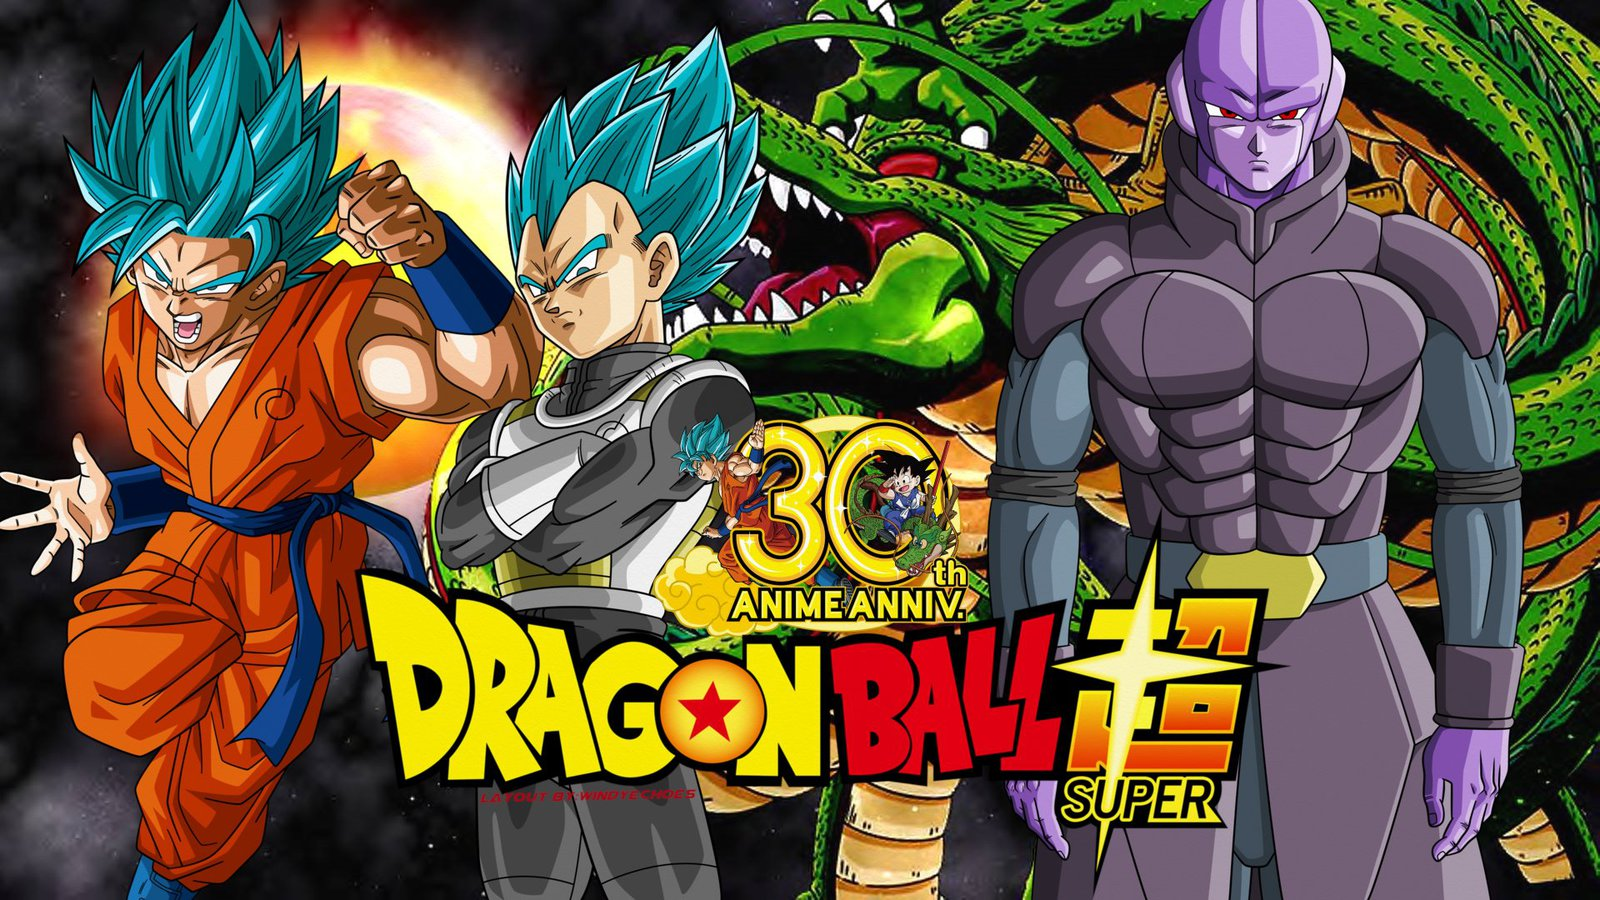 ... Live Dragon Ball Z Wallpaper Iphone X PowerMall